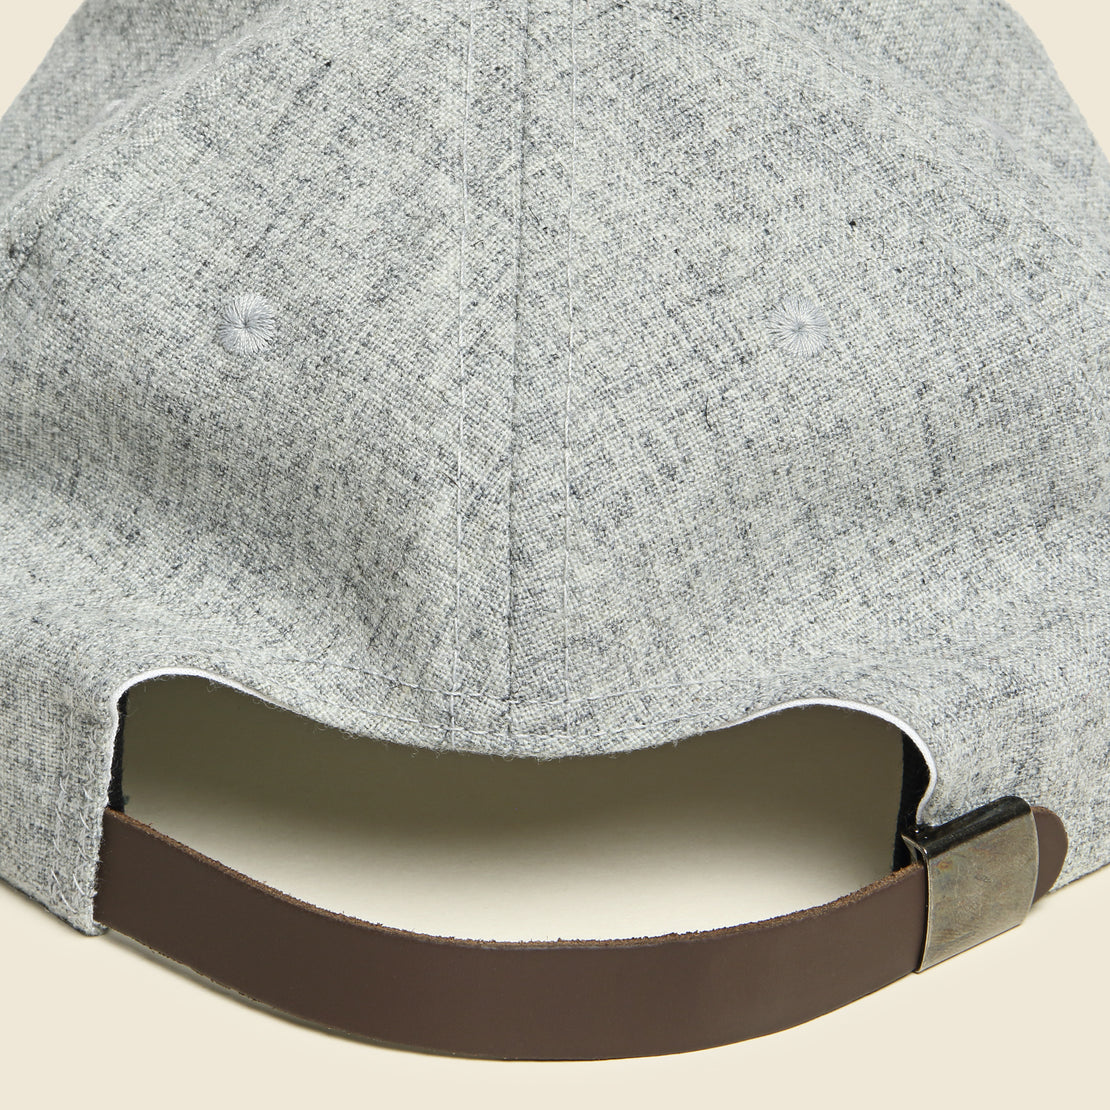 U.S. Tour of Japan Hat - Grey